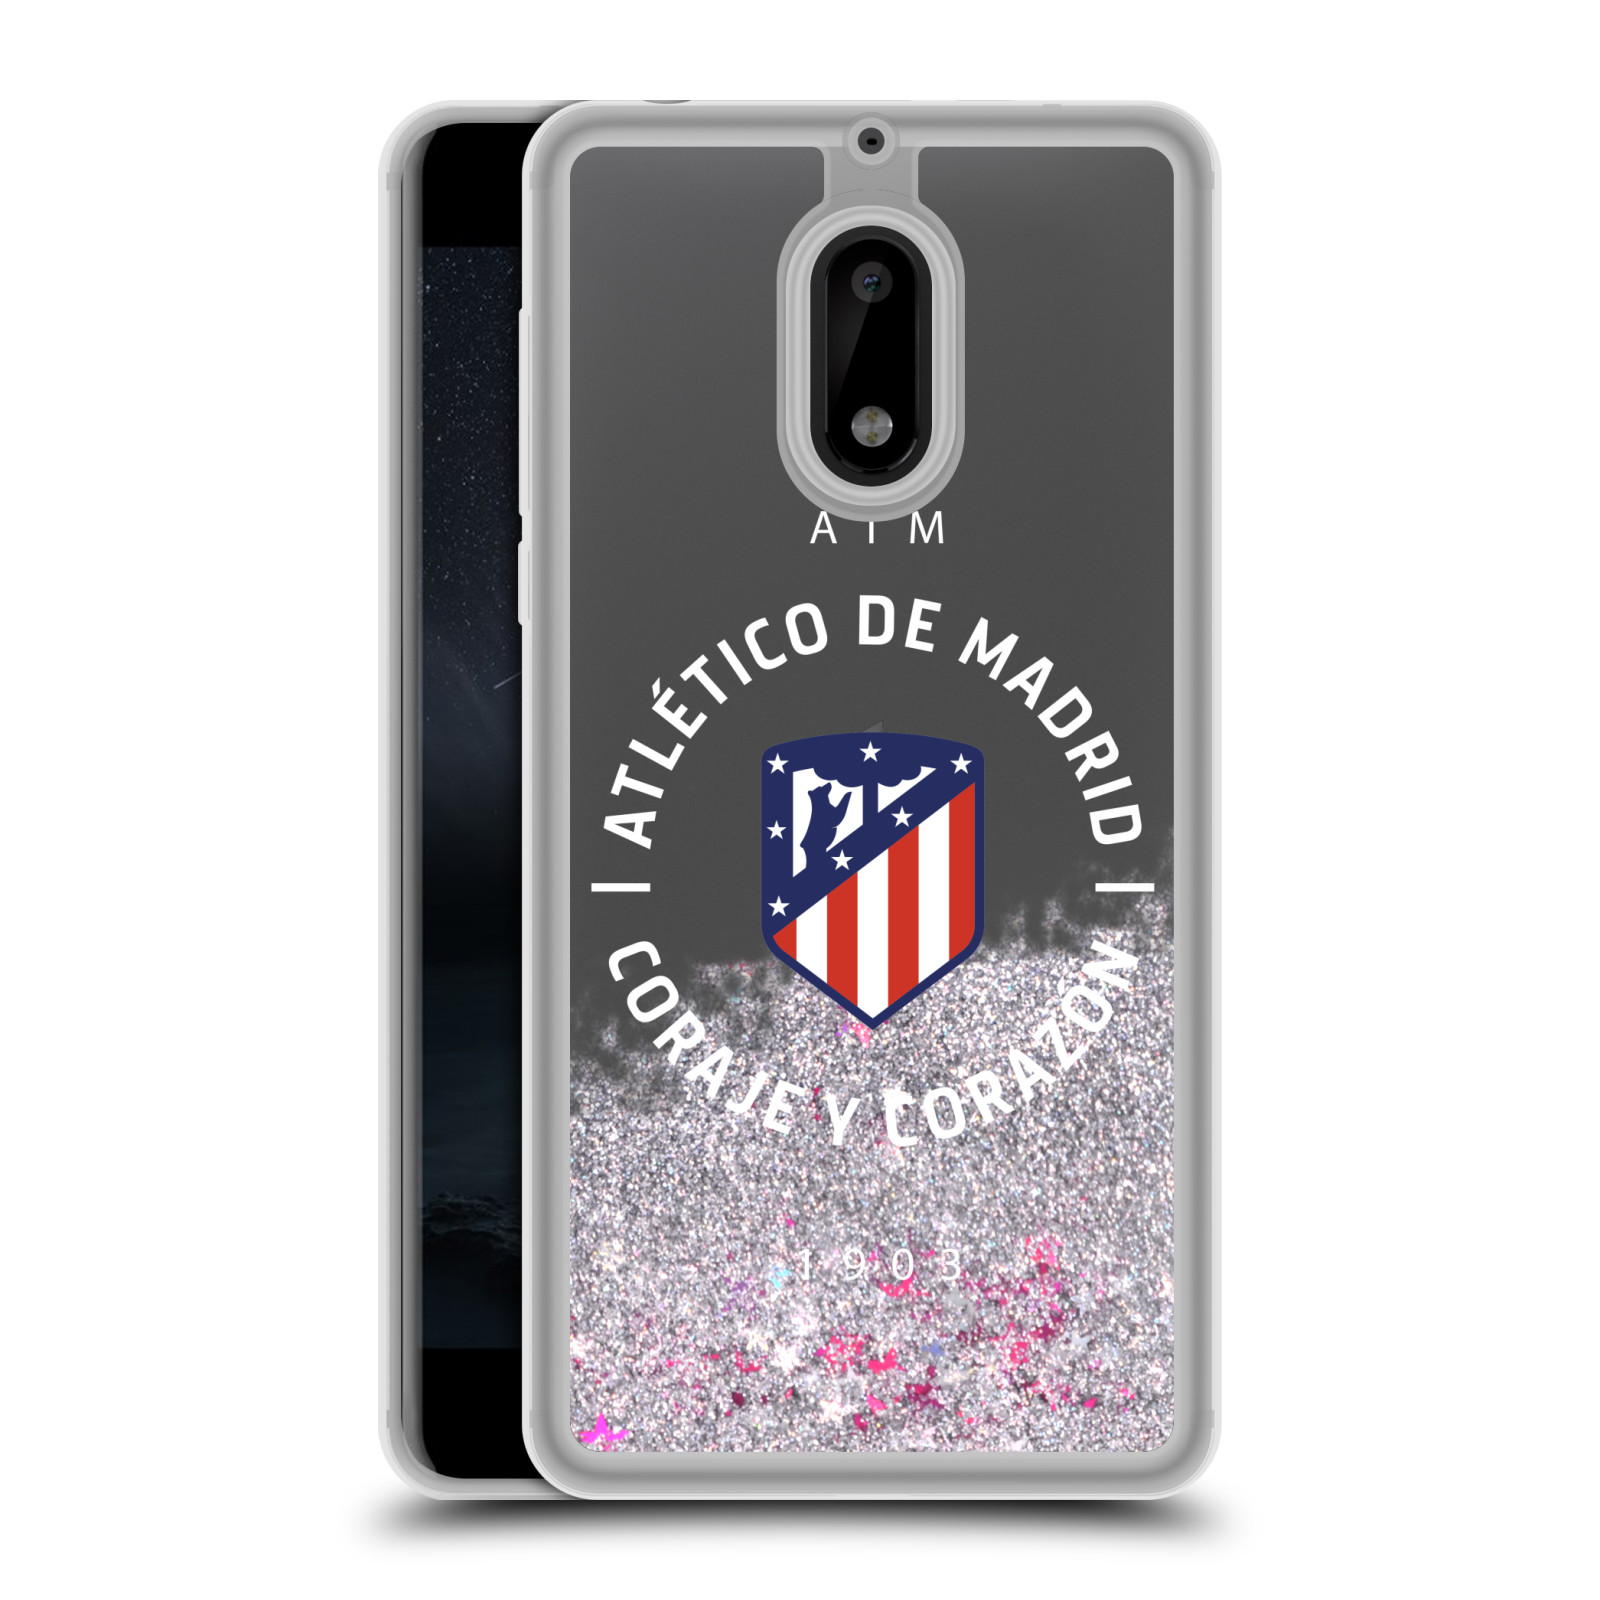 ATLETICO-MADRID-VARIOUS-DESIGNS-SILVER-HYBRID-LIQUID-GLITTER-FOR-NOKIA-PHONES